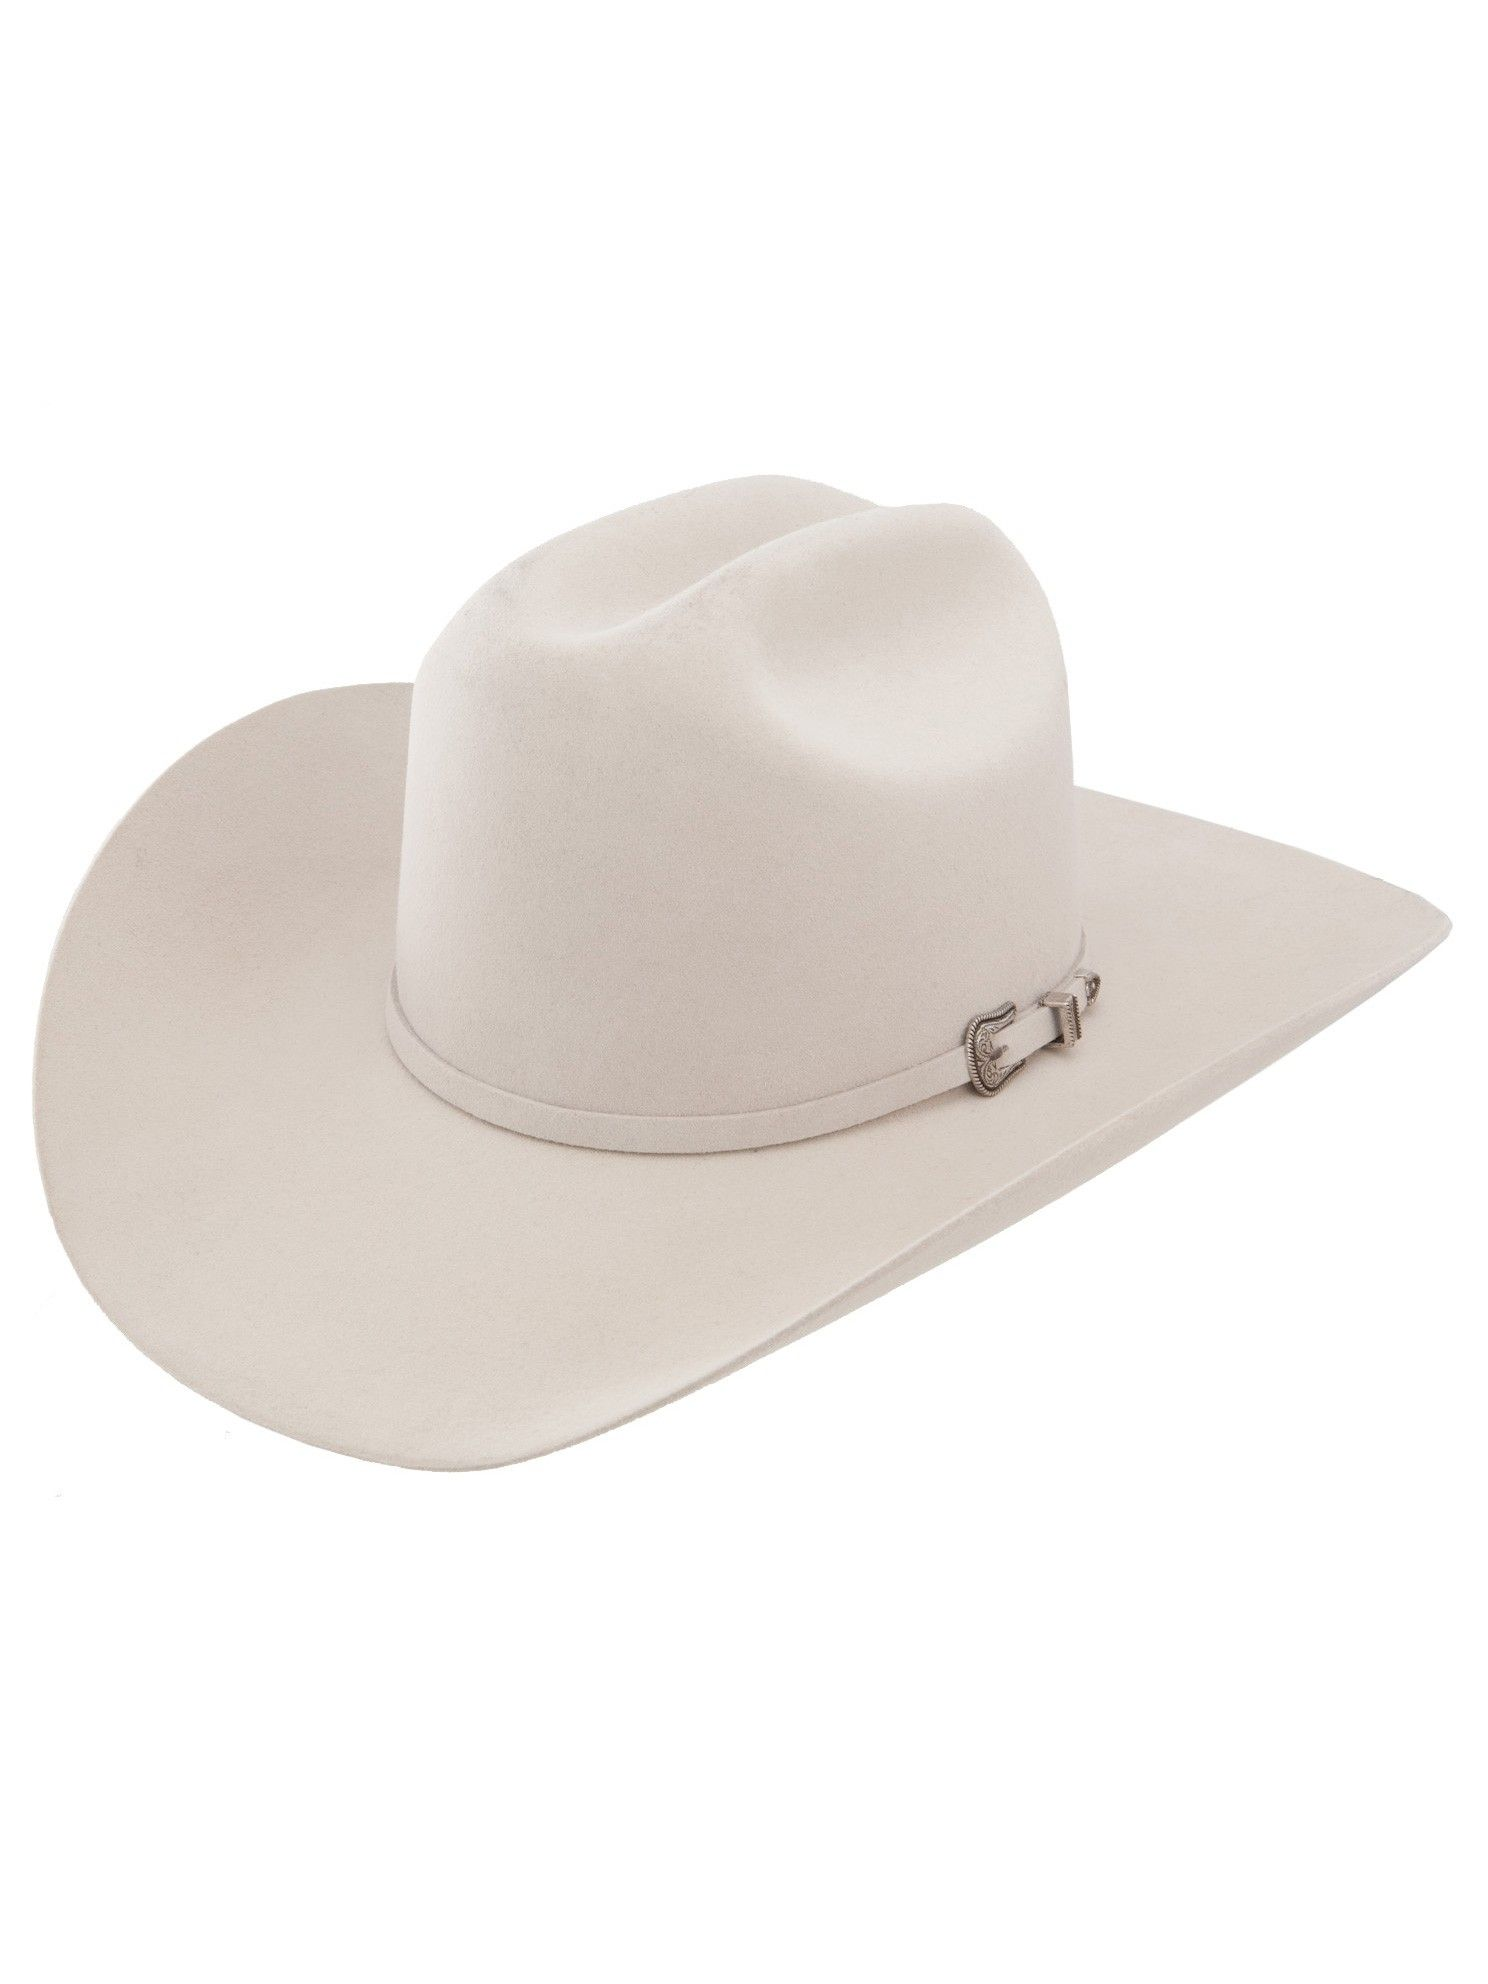 5ace11edf29 Mens Resistol Challenger Ivory Cowboy Hat RFTCHG-754028 - Texas Boot  Company is located in Bastrop